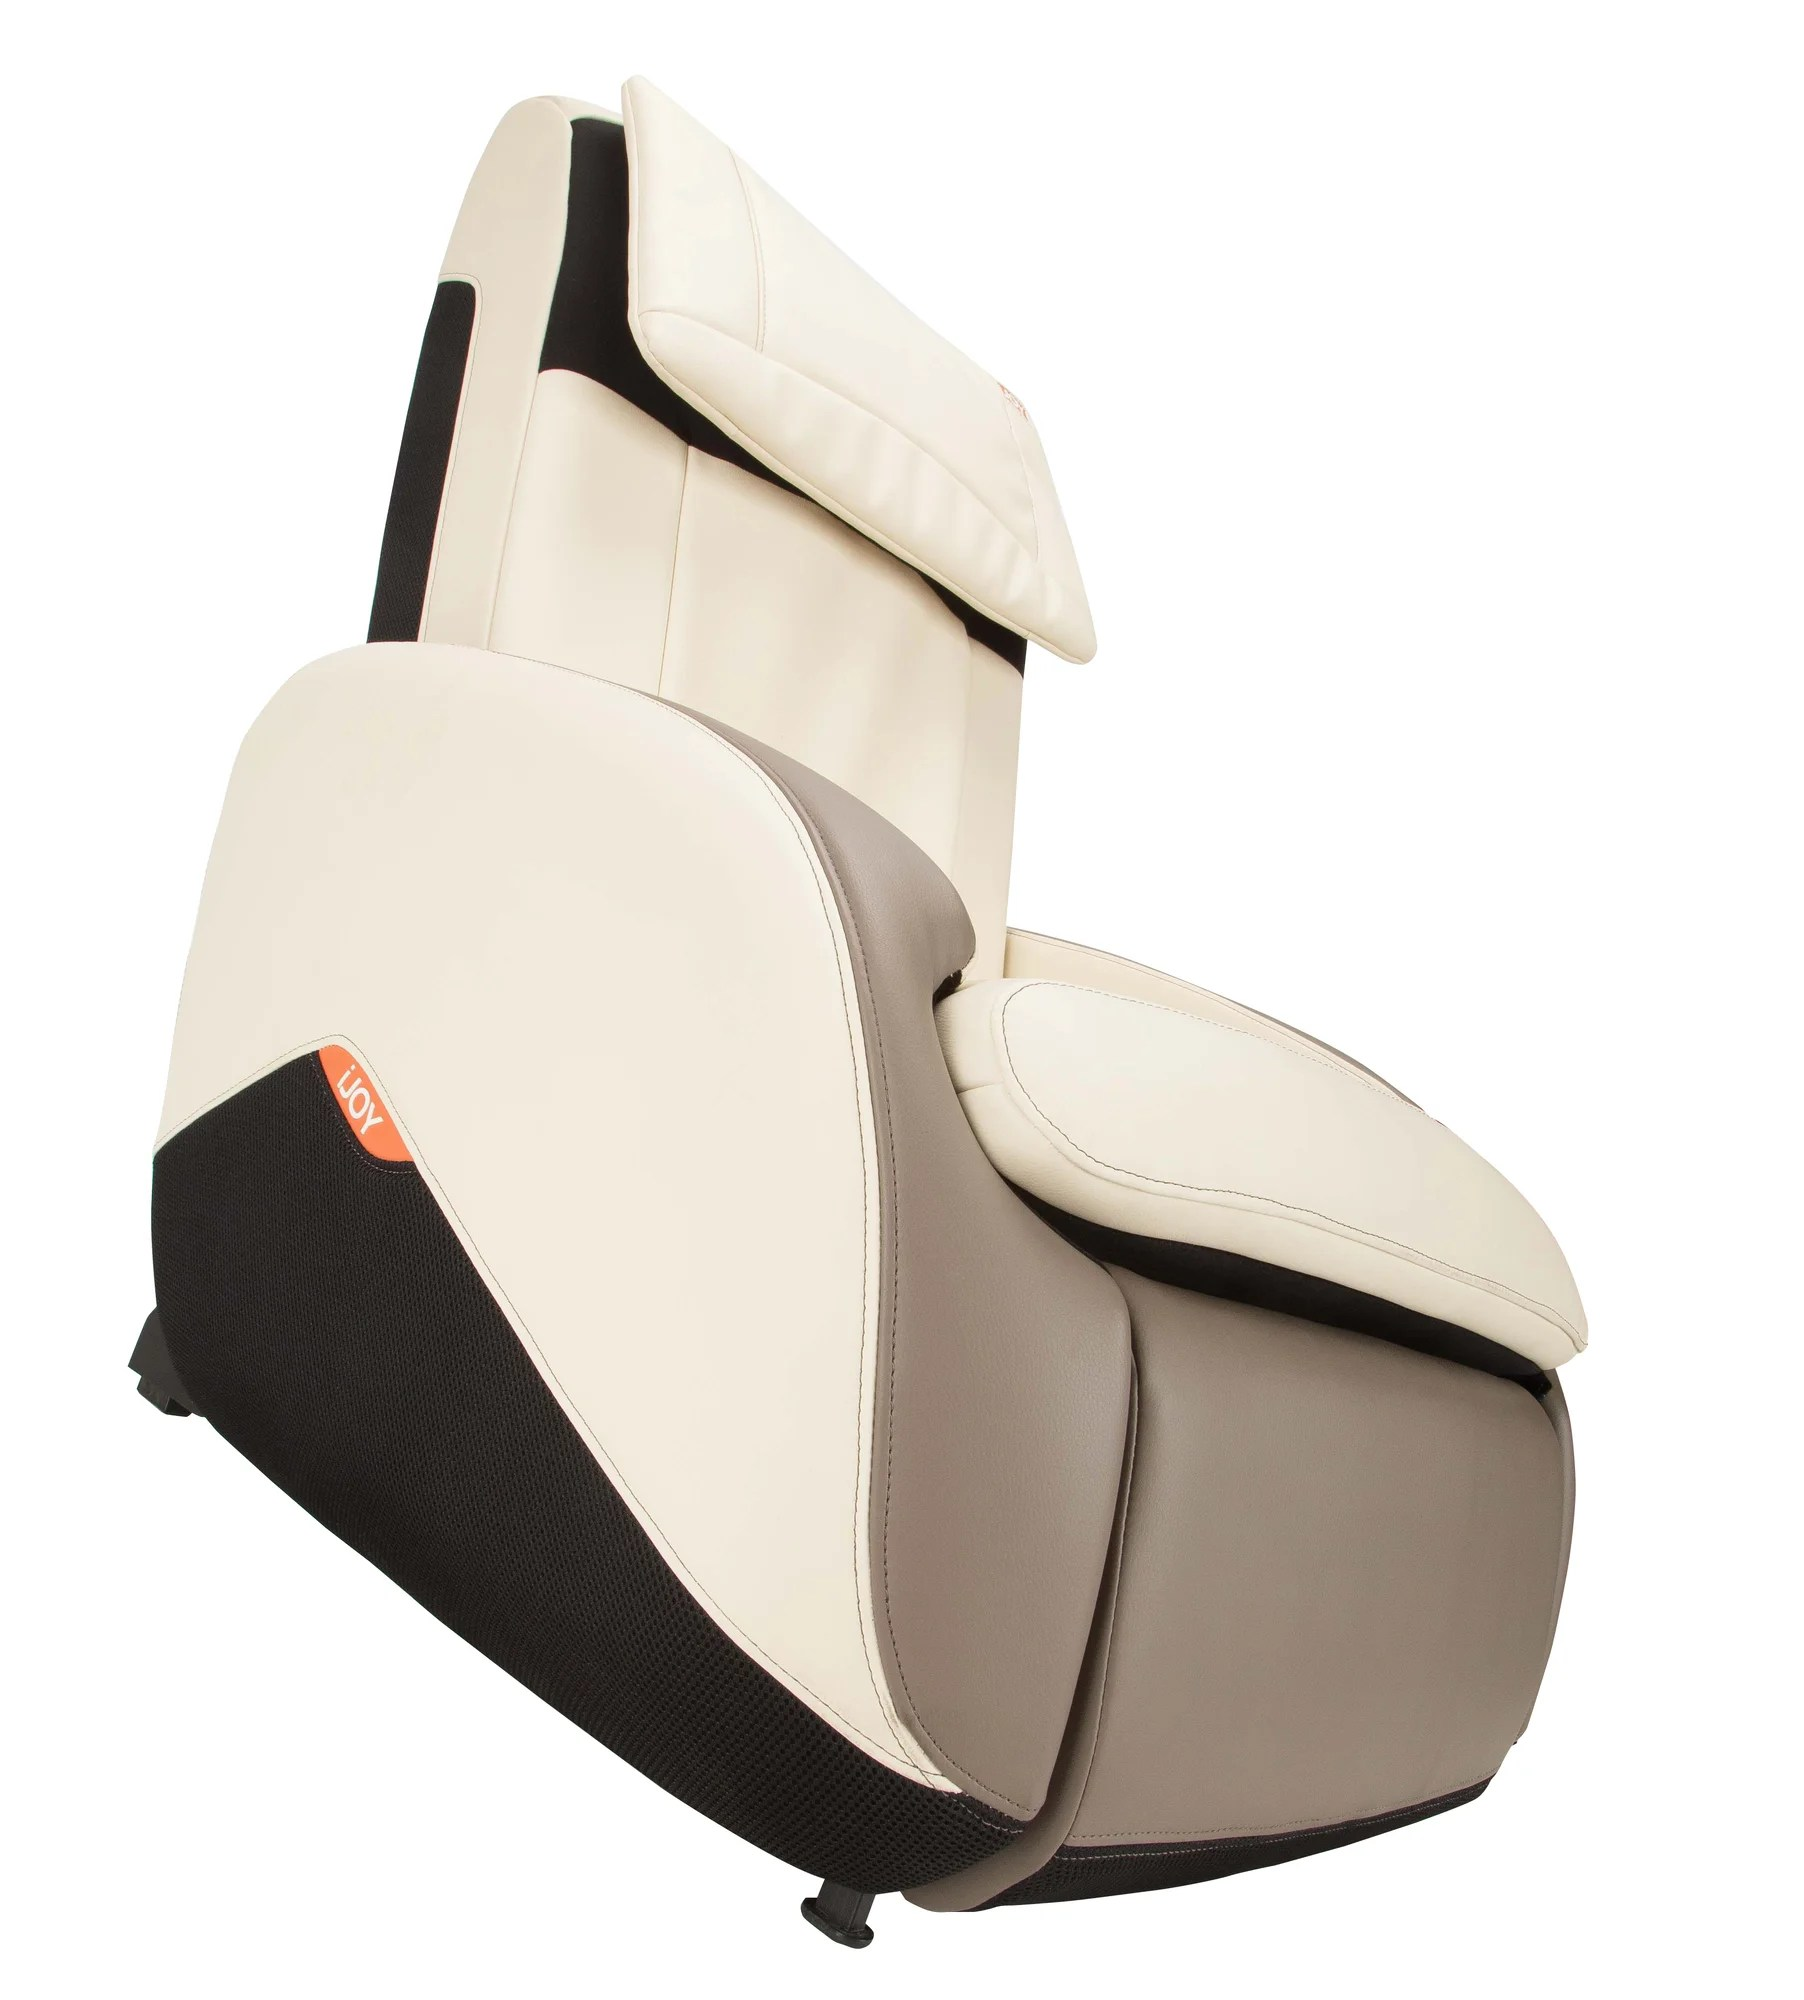 human touch chair inexpensive dining room covers ijoy active 2 zero gravity massage ebay